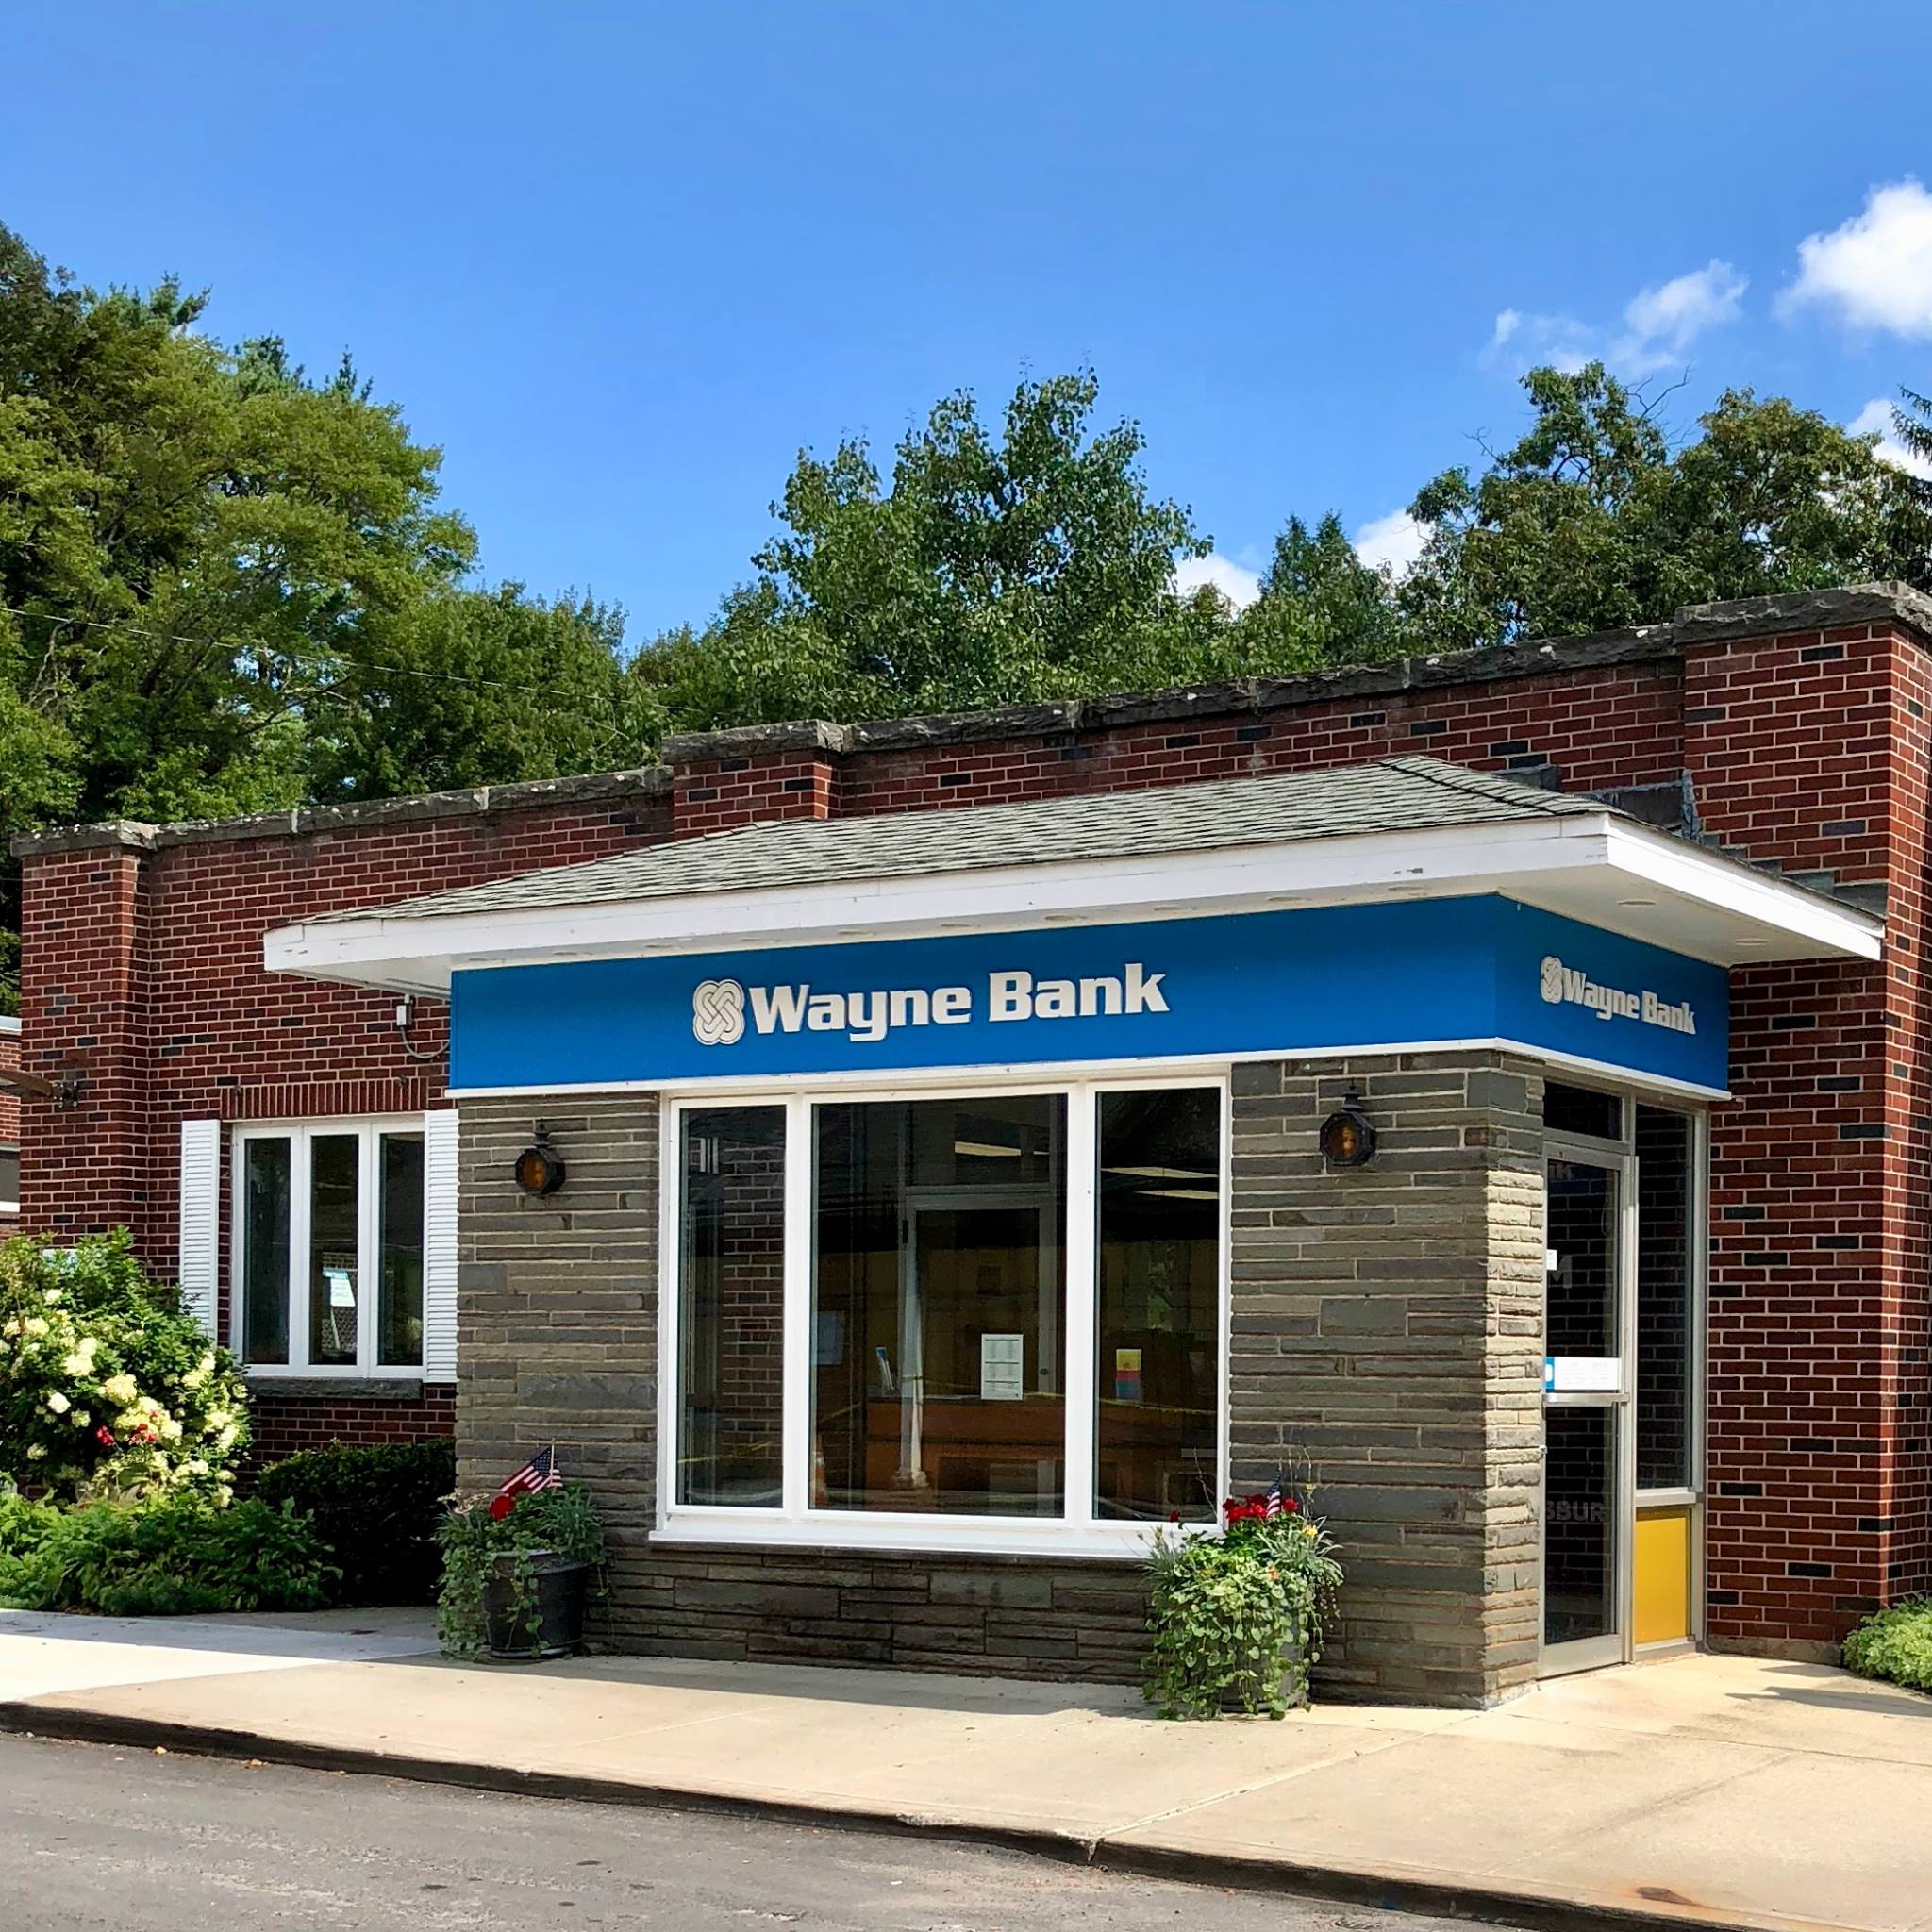 Wayne Bank in Narrowsburg, NY